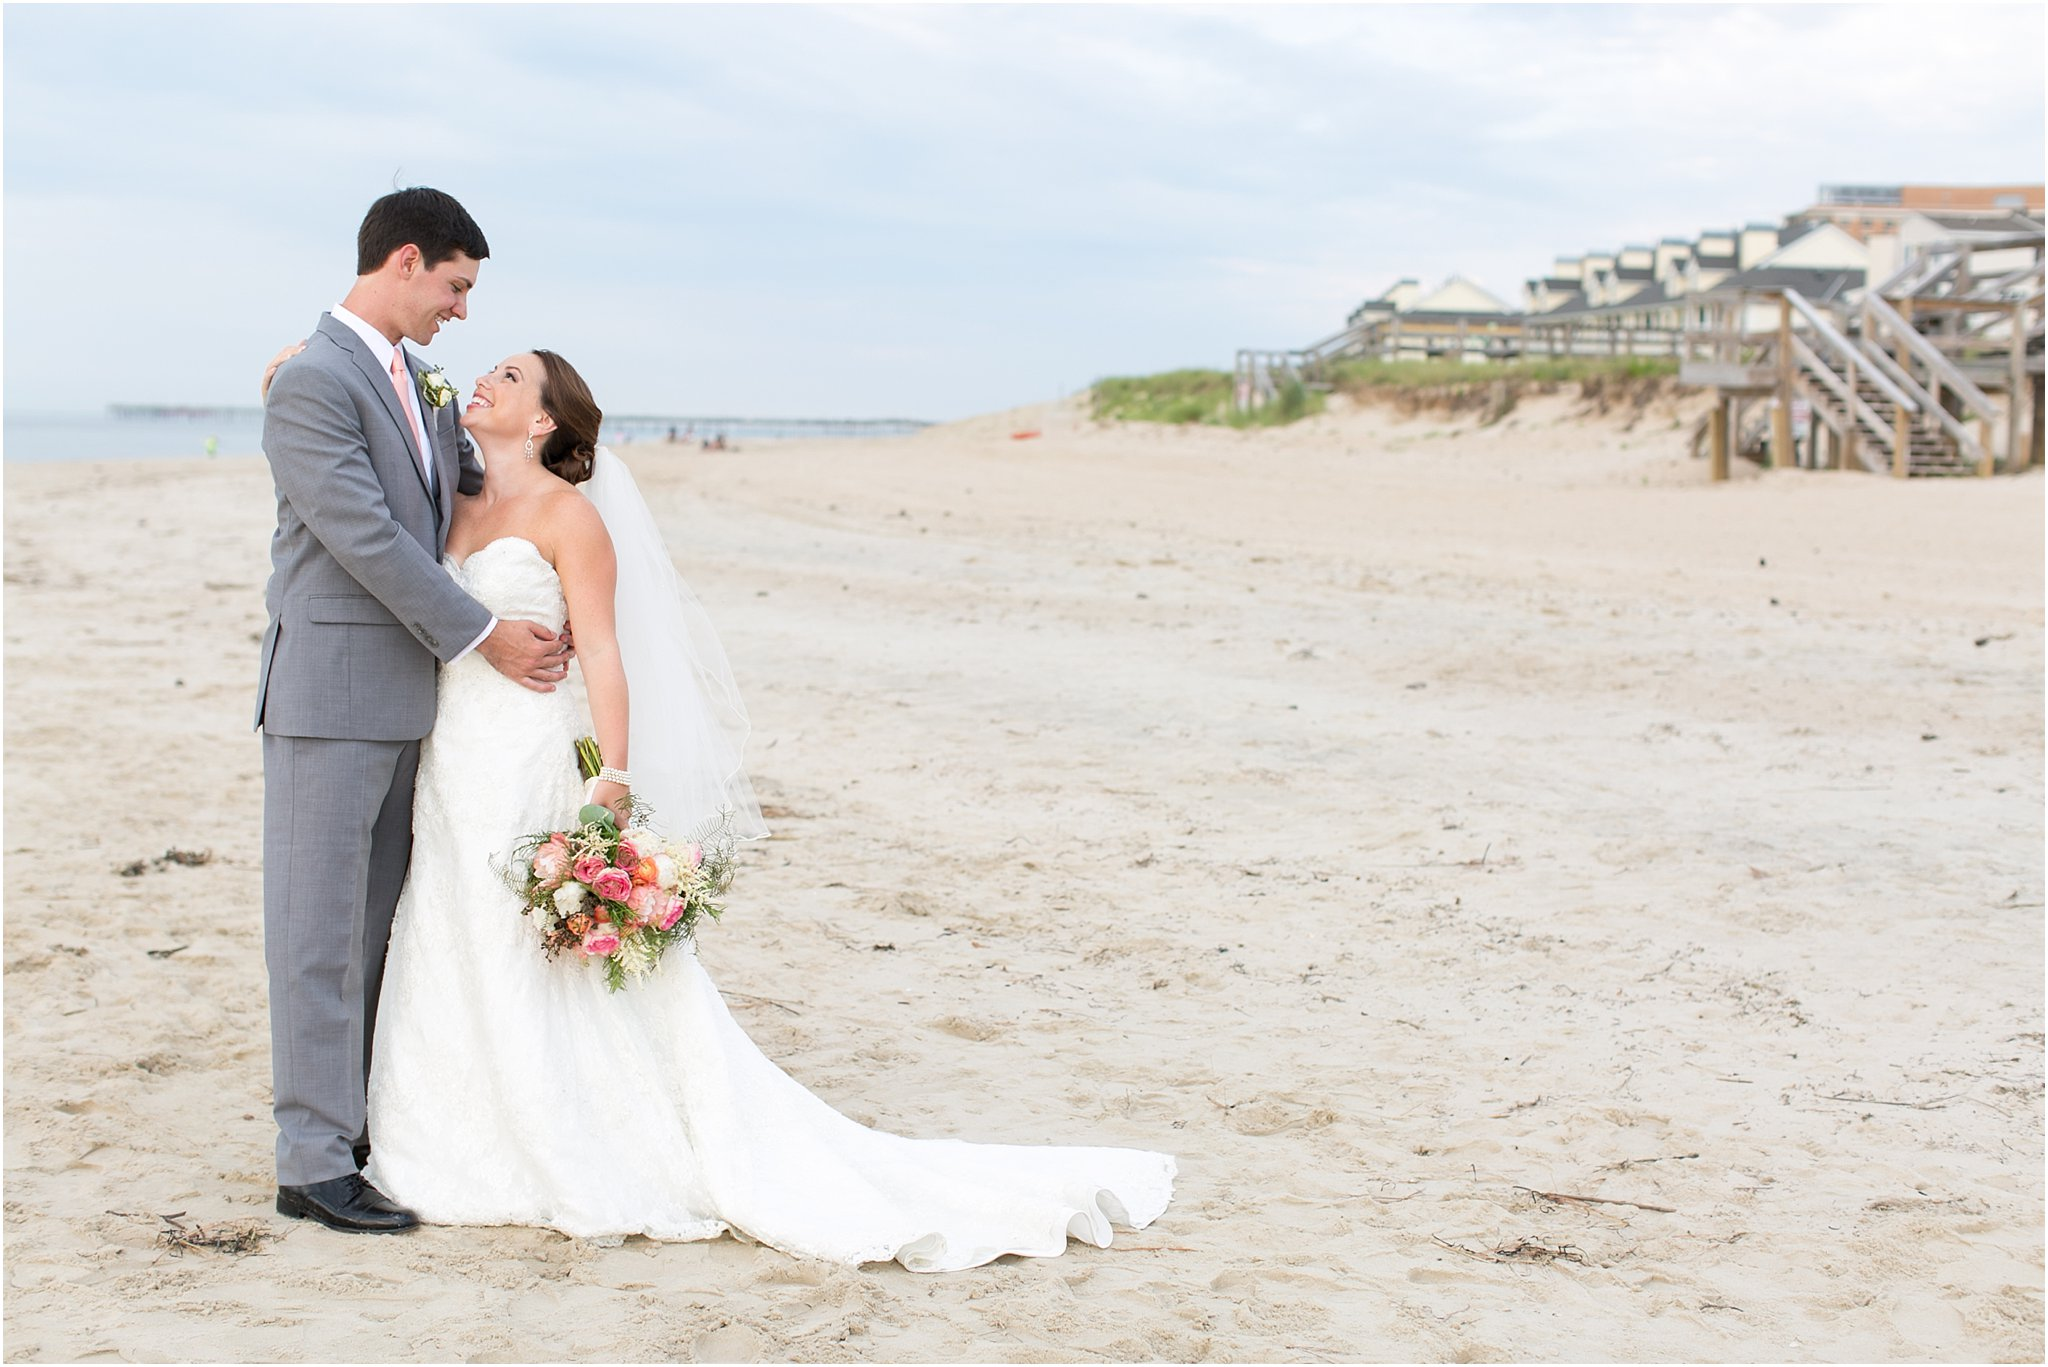 jessica_ryan_photography_wedding_photography_virginiabeach_virginia_candid_authentic_wedding_portraits_marina_shores_yacht_club_chesapeake_bay_1873